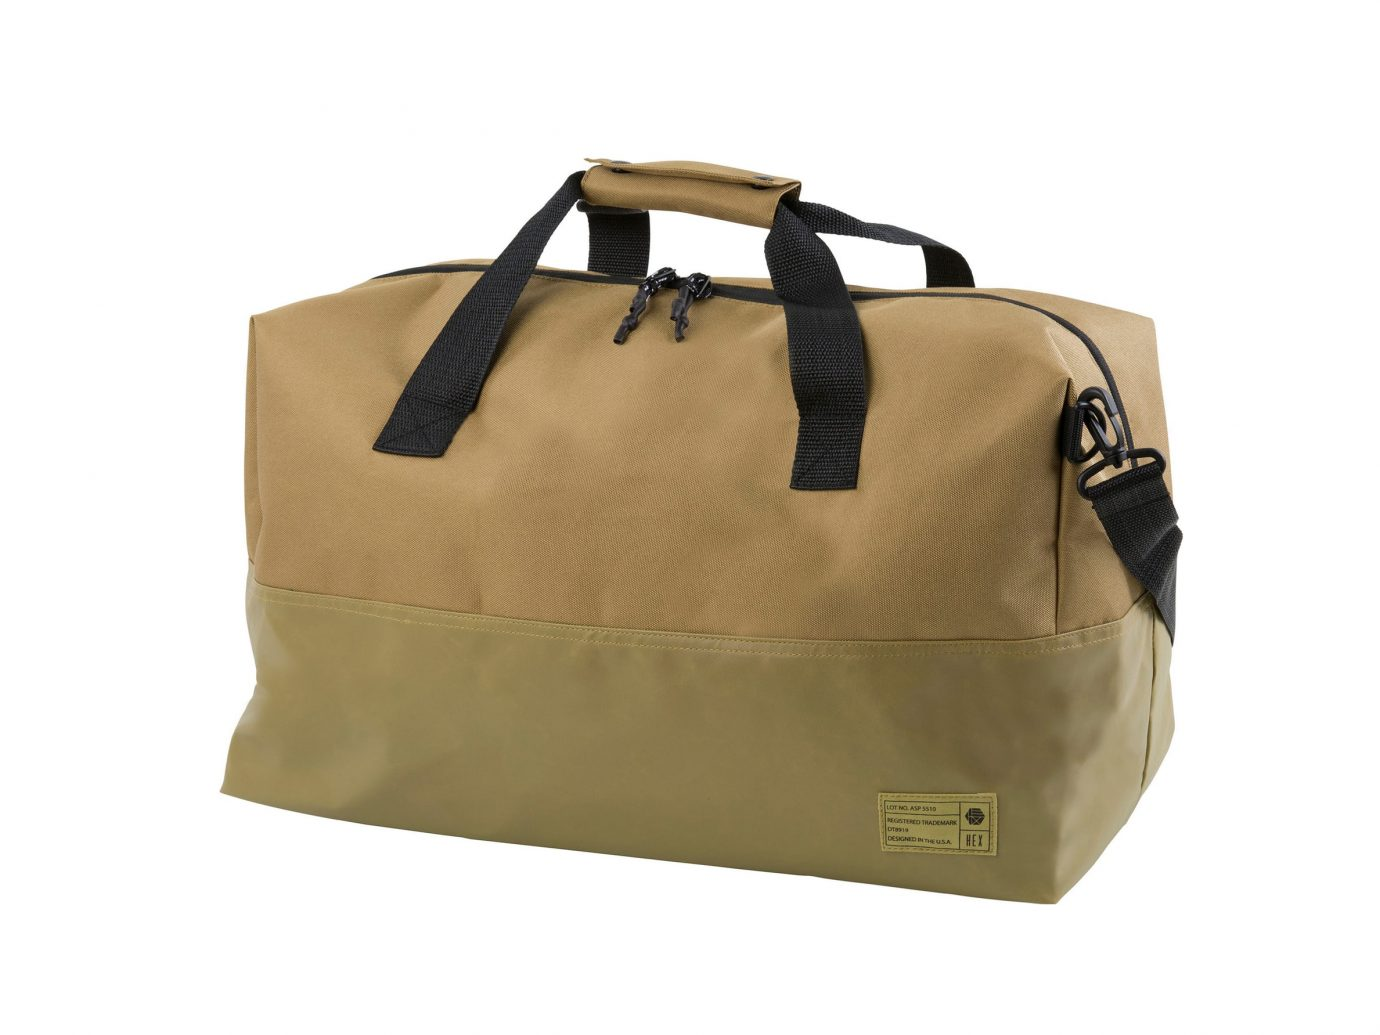 Best Weekend Bags Hex Aspect Duffel Bag